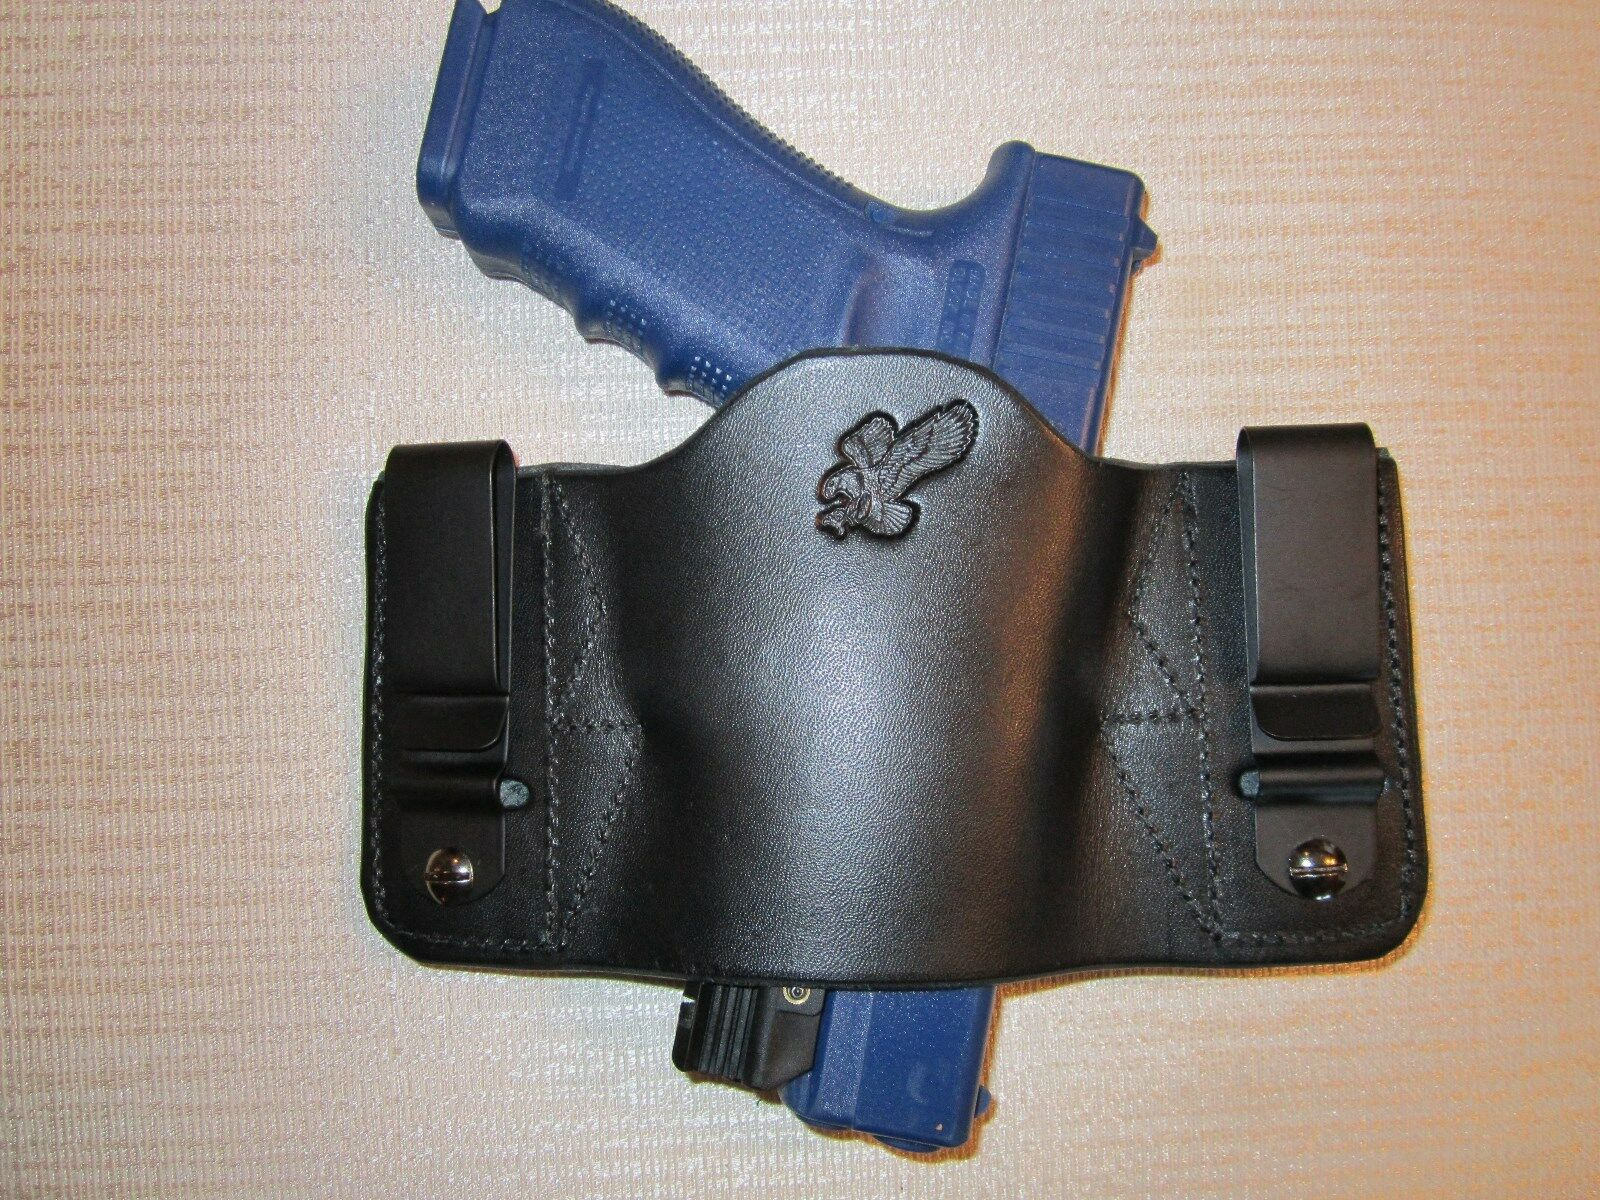 FITS KAHR WITH LASERS,FULLY AMB. & UNIVERSAL FIT, IWB OR OWB, R & L HAND